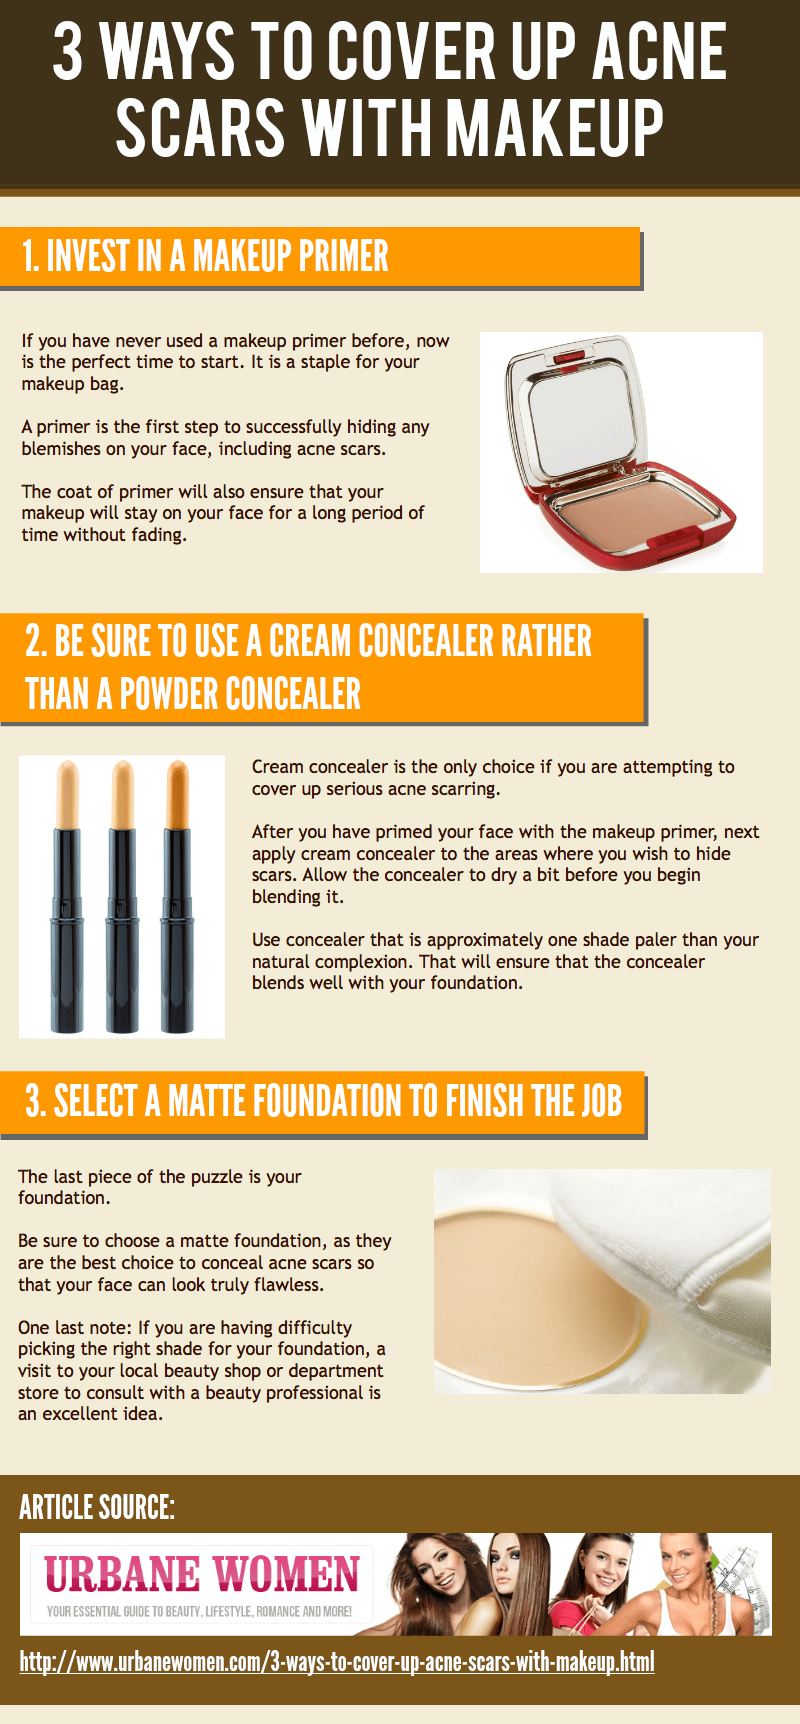 3 Ways To Cover Up Acne Scars With Makeup